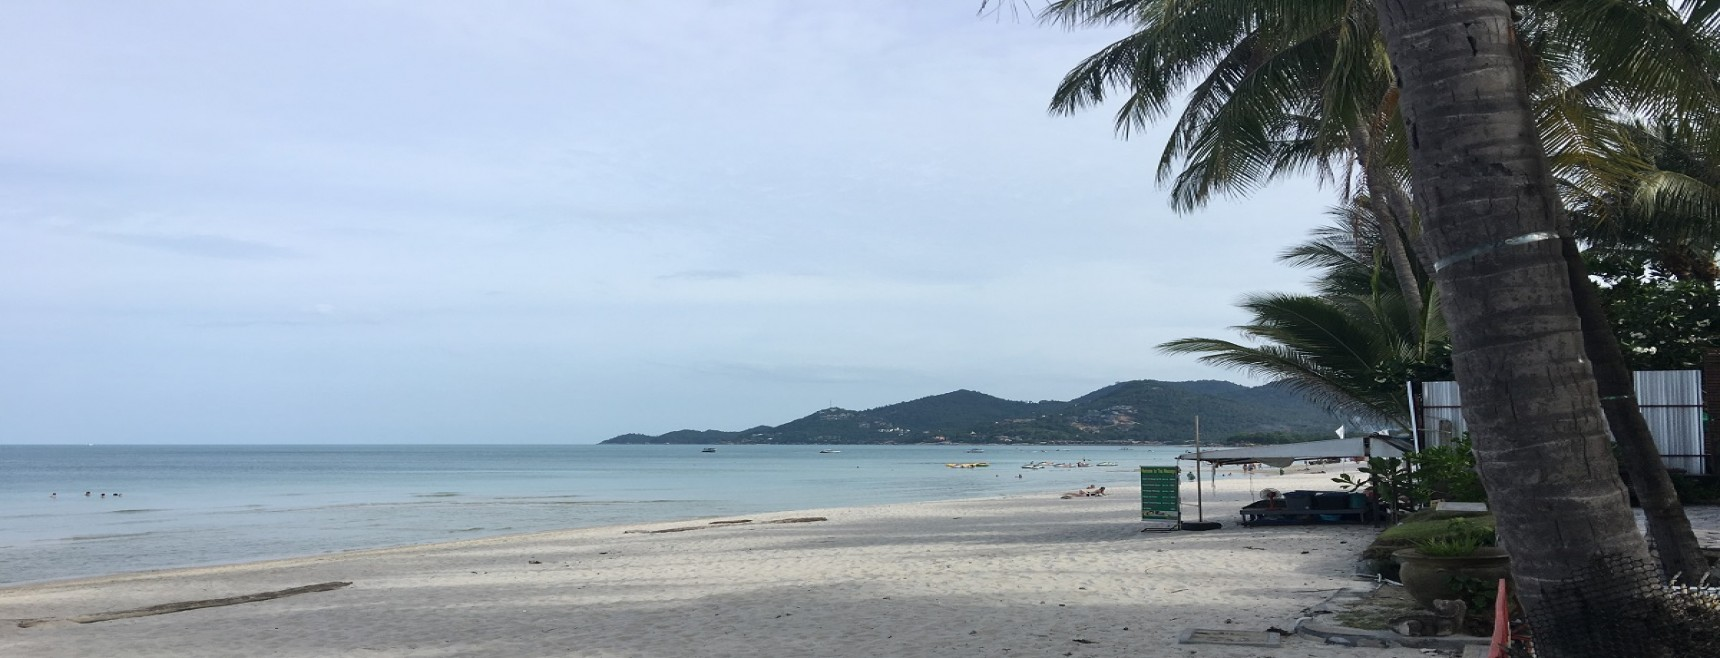 Prime Land in Central Chaweng Beach Koh Samui (Thai-Real.com)